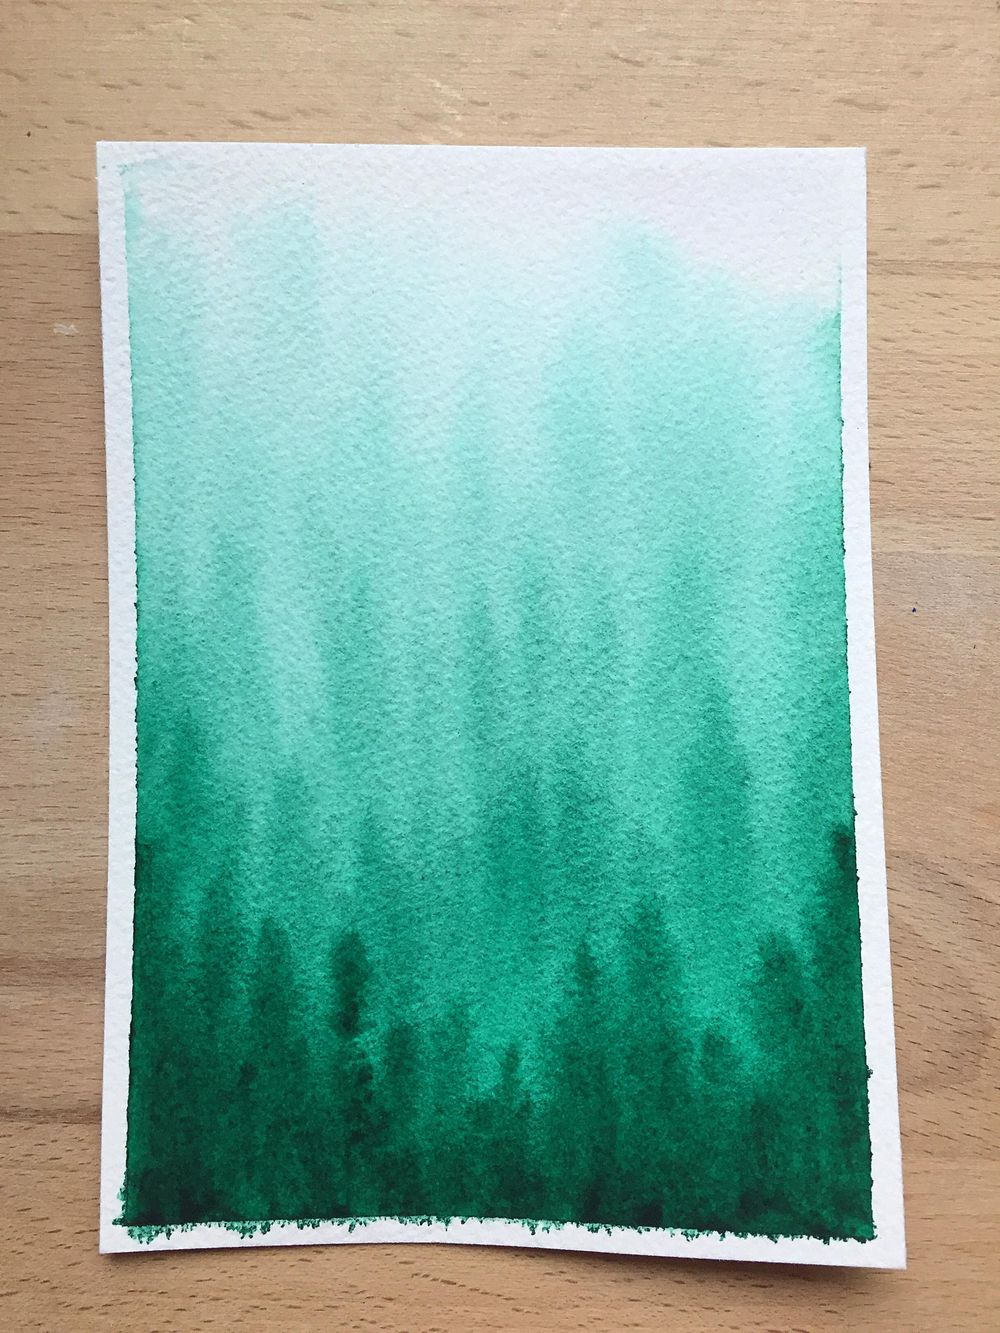 Monochrome watercolor - image 4 - student project